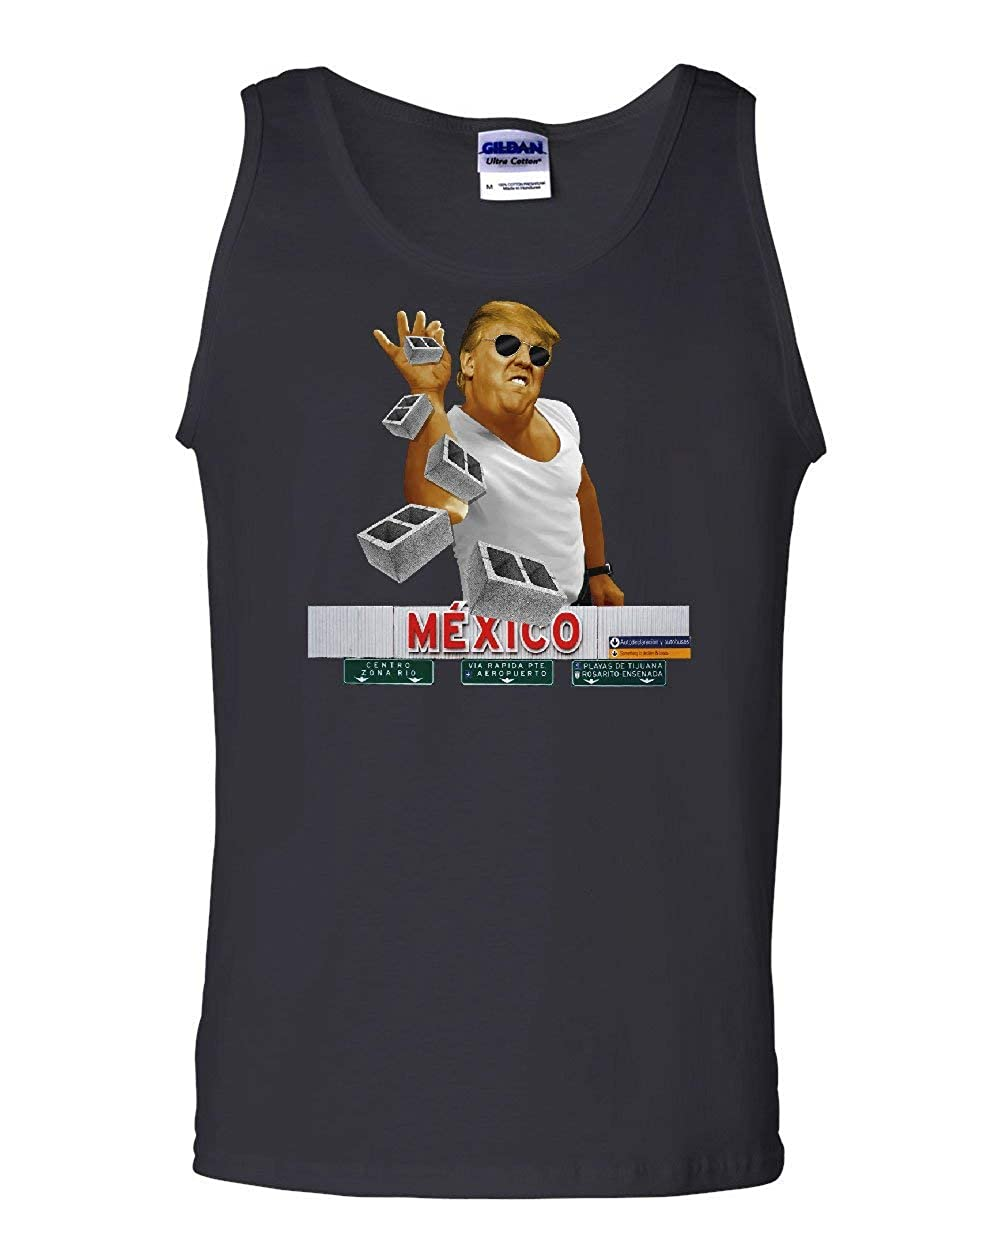 A Pinch of The Wall Tank Top Trump Salt Bae Immigration Mexico Sleeveless